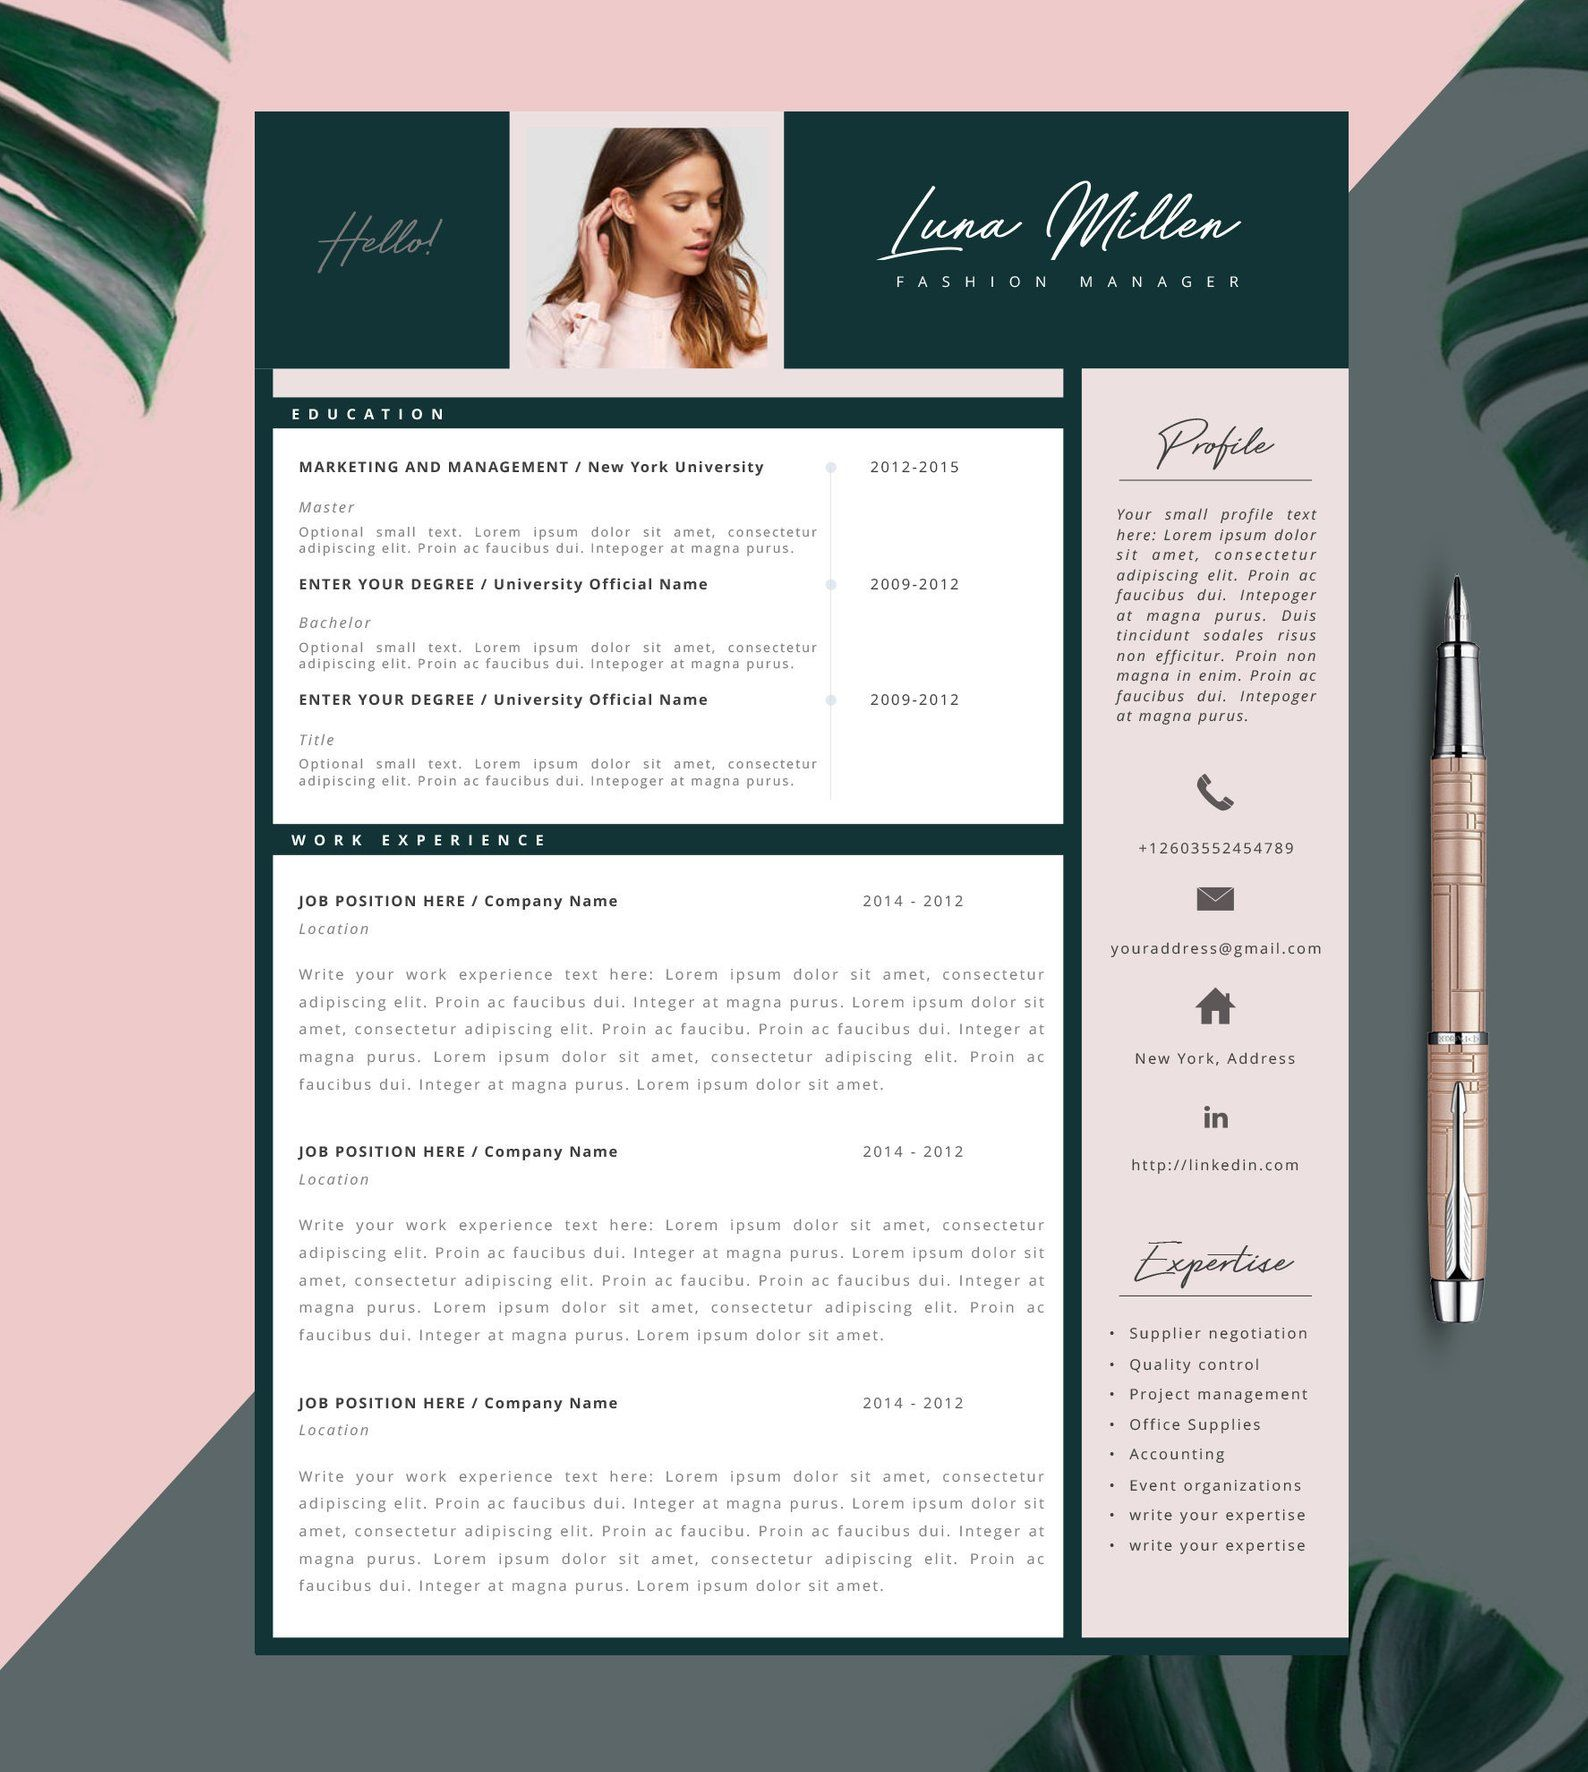 Fashion Resume Cv Template Resume Template Creative Resume 2 Page Resume Instant Download Editable In Ms Word And Pages Cover Letter Modele Cv Cv Creatif Modele De Cv Creatif